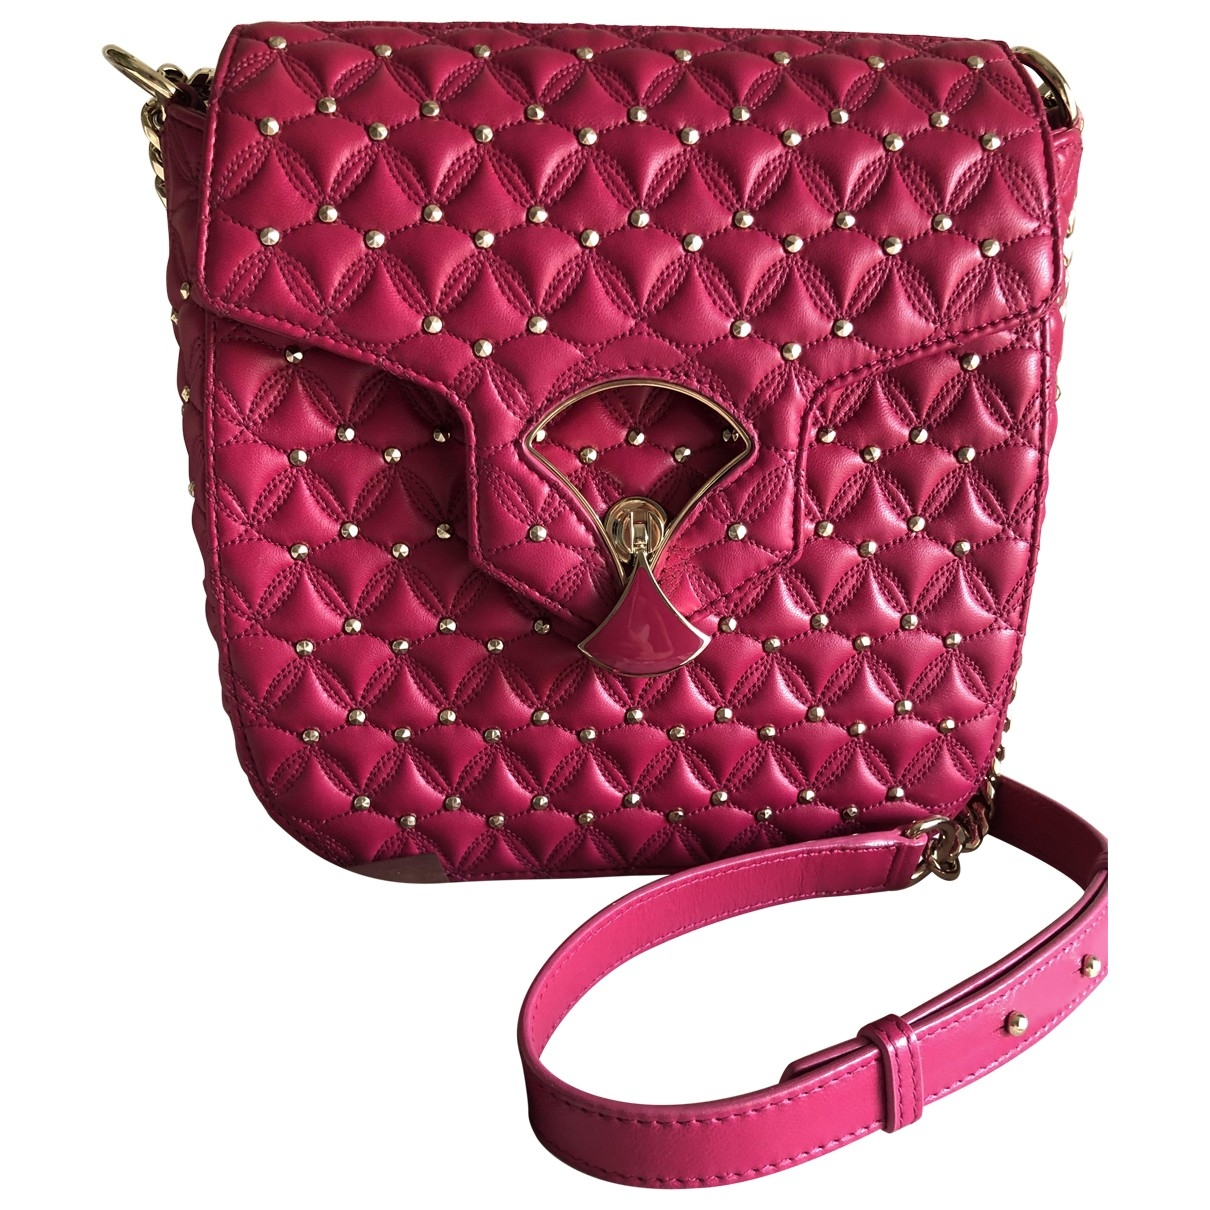 Bvlgari \N Pink Leather handbag for Women \N